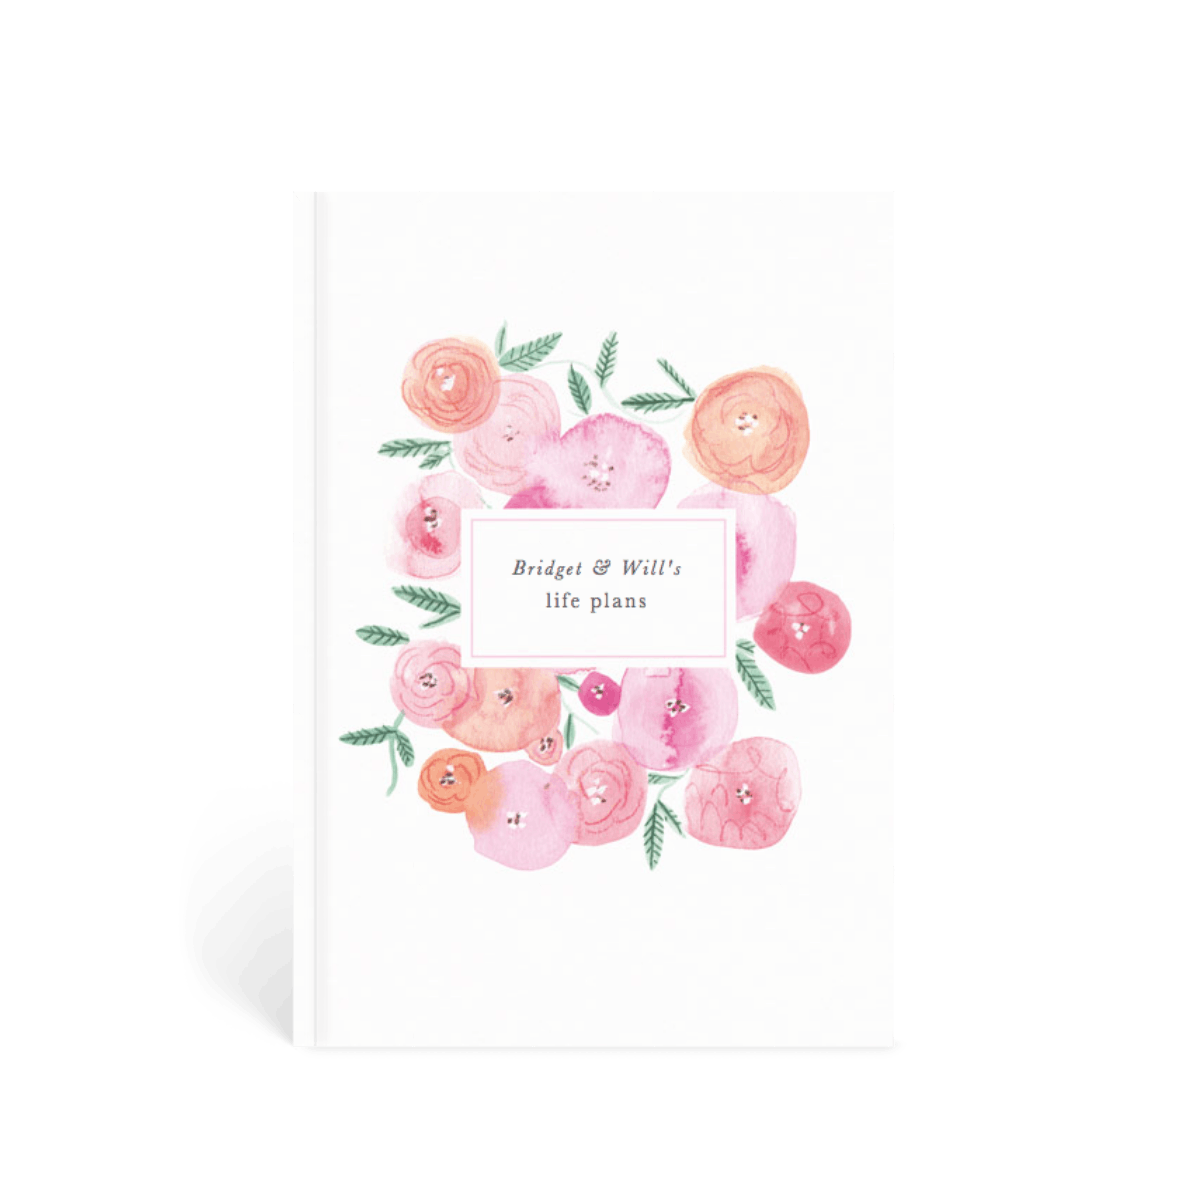 Https%3a%2f%2fwww.papier.com%2fproduct image%2f42149%2f25%2fspring ranunculus 10754 vorderseite 1532445462.png?ixlib=rb 1.1